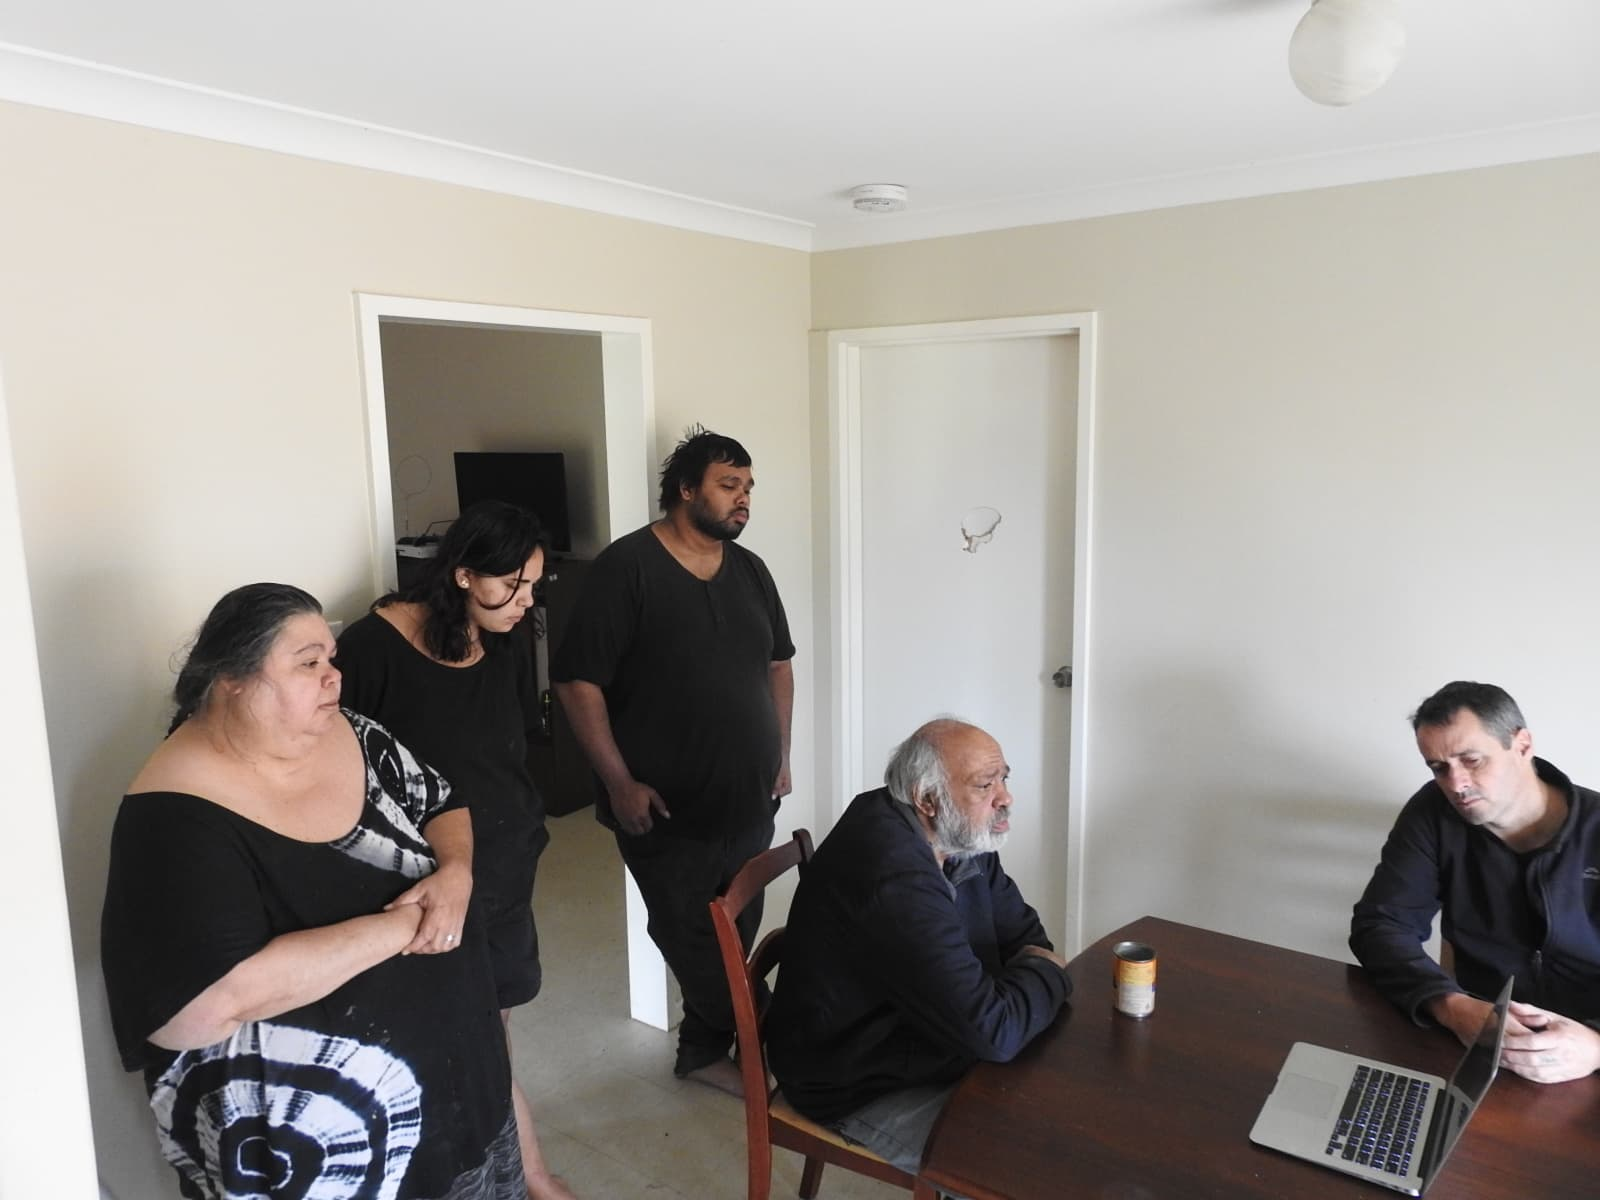 30 August 2018 - Richard Greatorex and Family review the final cut of Richard's story with Alexander Hayes.